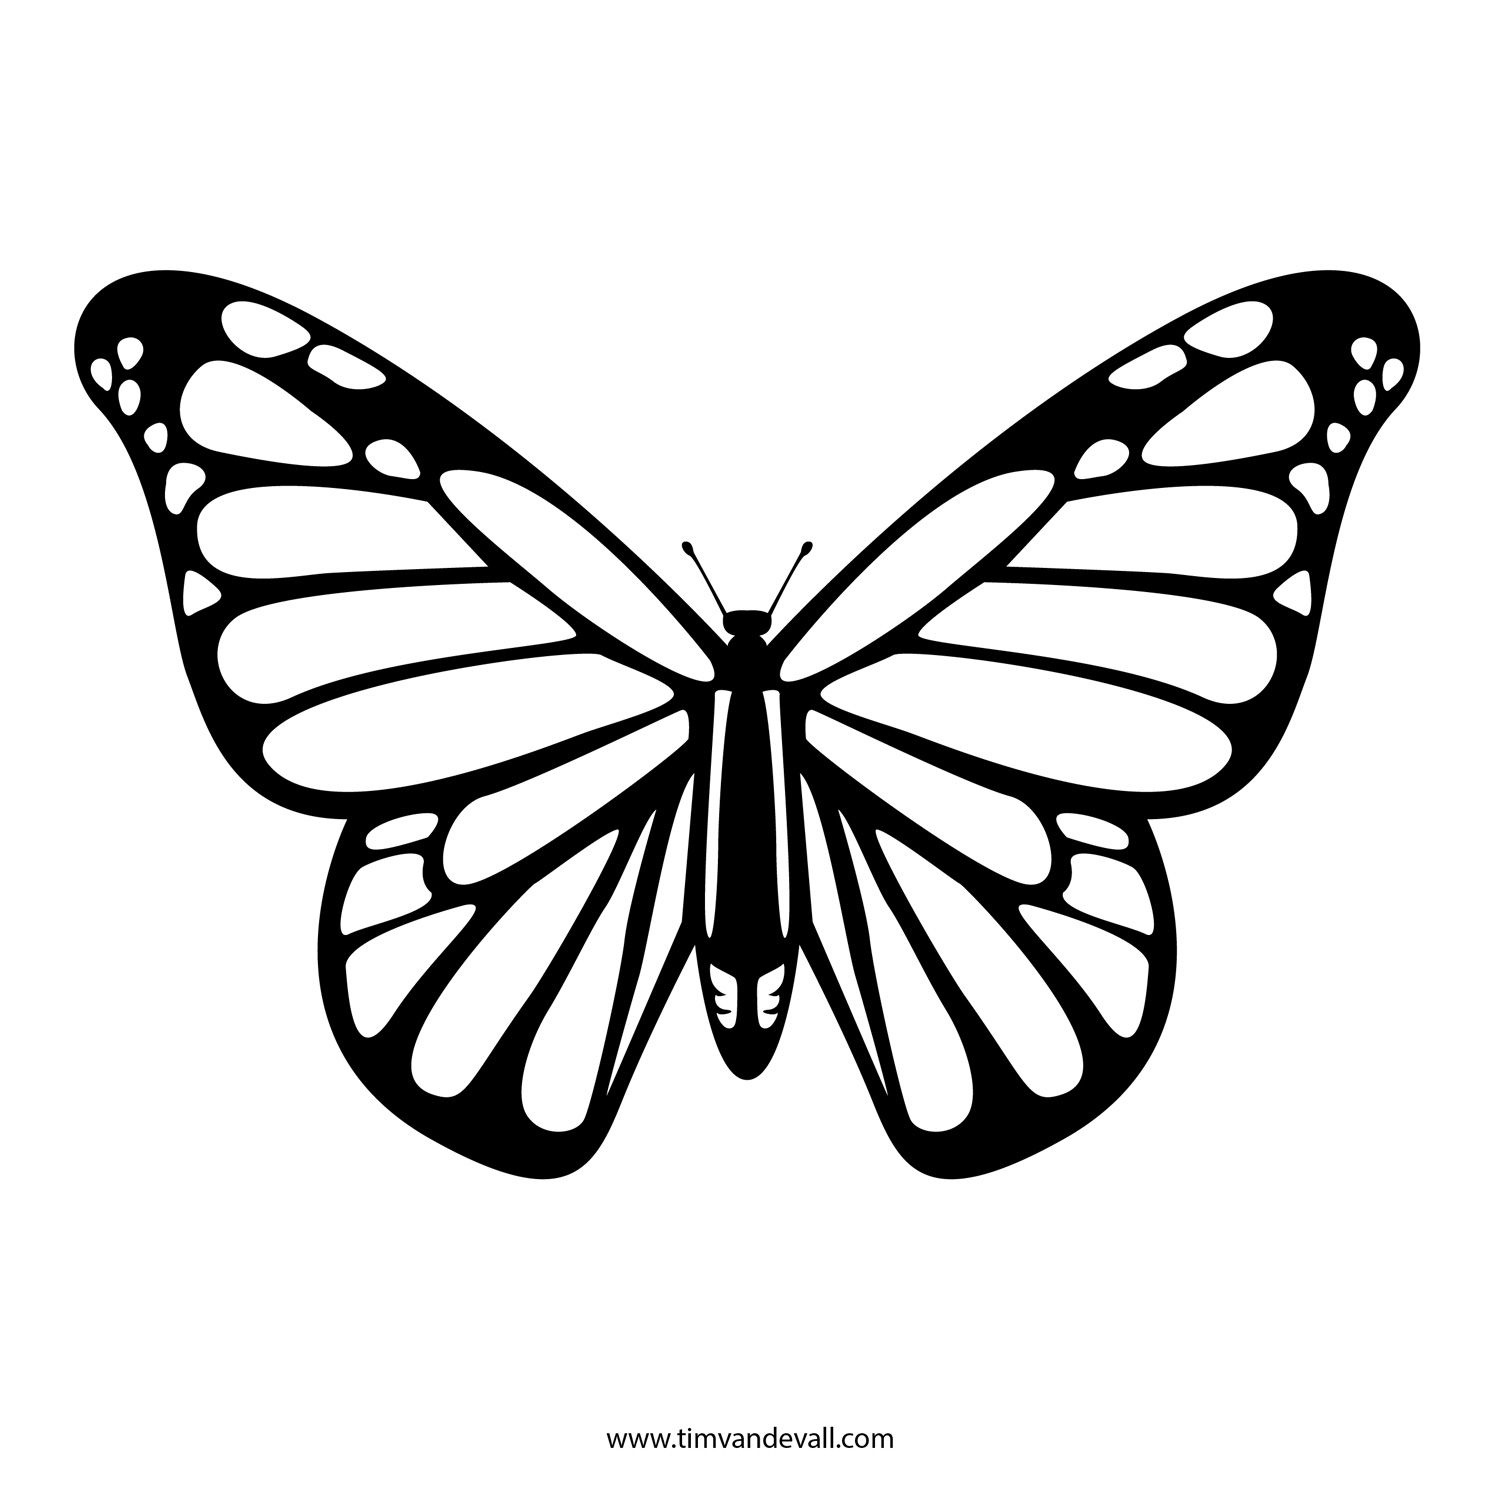 The First Stencil Shaped Like A Monarch Butterfly. Description From - Free Printable Butterfly Cutouts